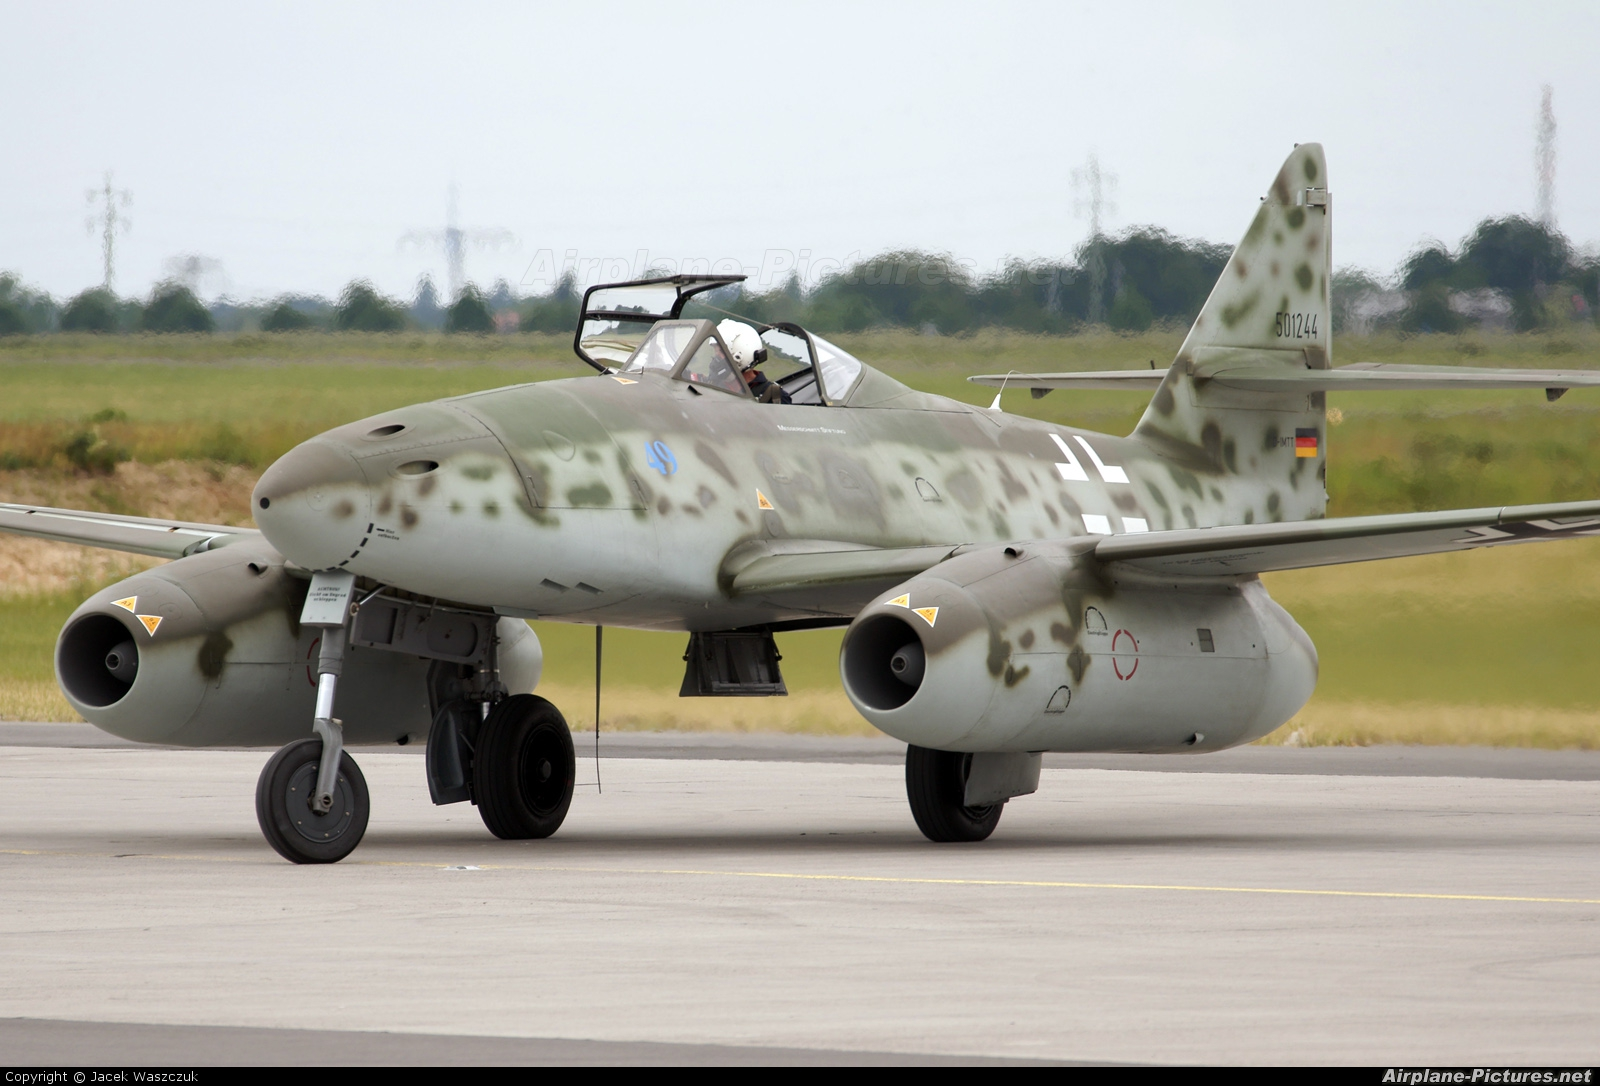 109at1 messerschmitt luftwaffe - photo #10